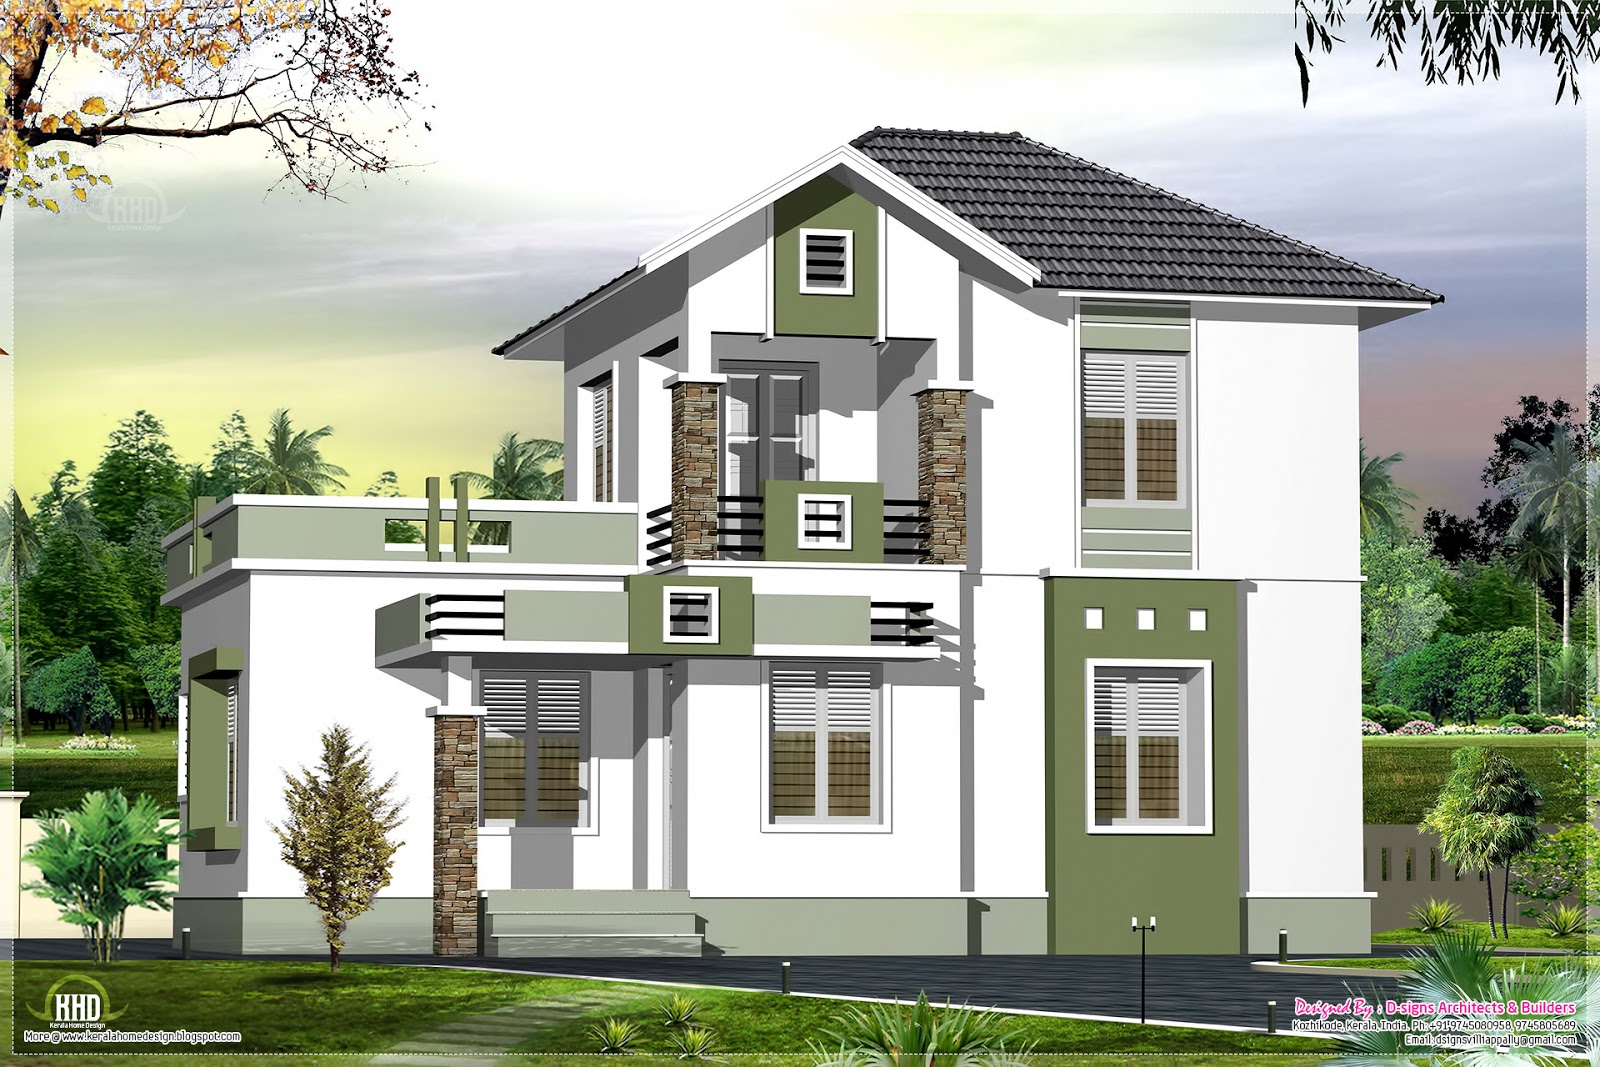 eco friendly small house plans lrg cedad golime eco friendly houses living homes prefab